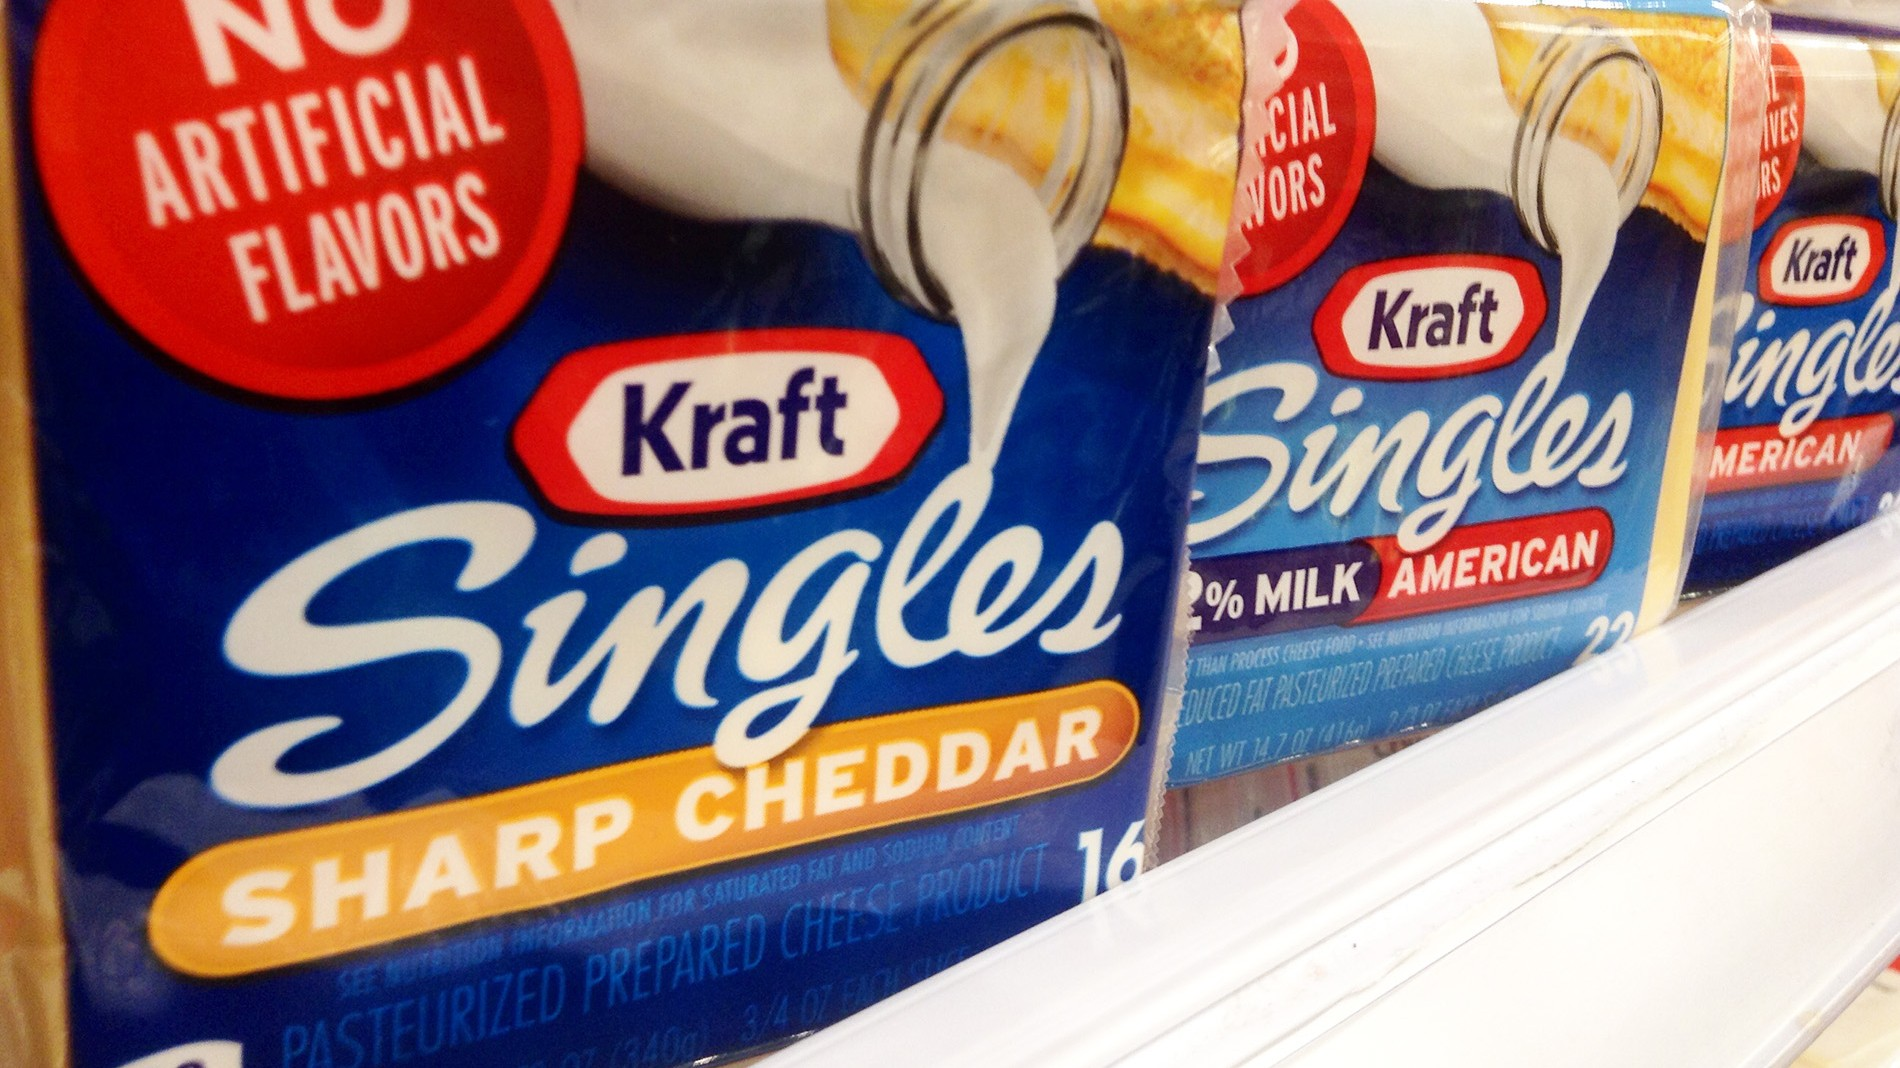 processed cheese and kraft foods Global processed cheese market 2017-2021 - key vendors are arla foods, bel group, fonterra food, kraft heinz, lactalis group & savencia - research and markets.